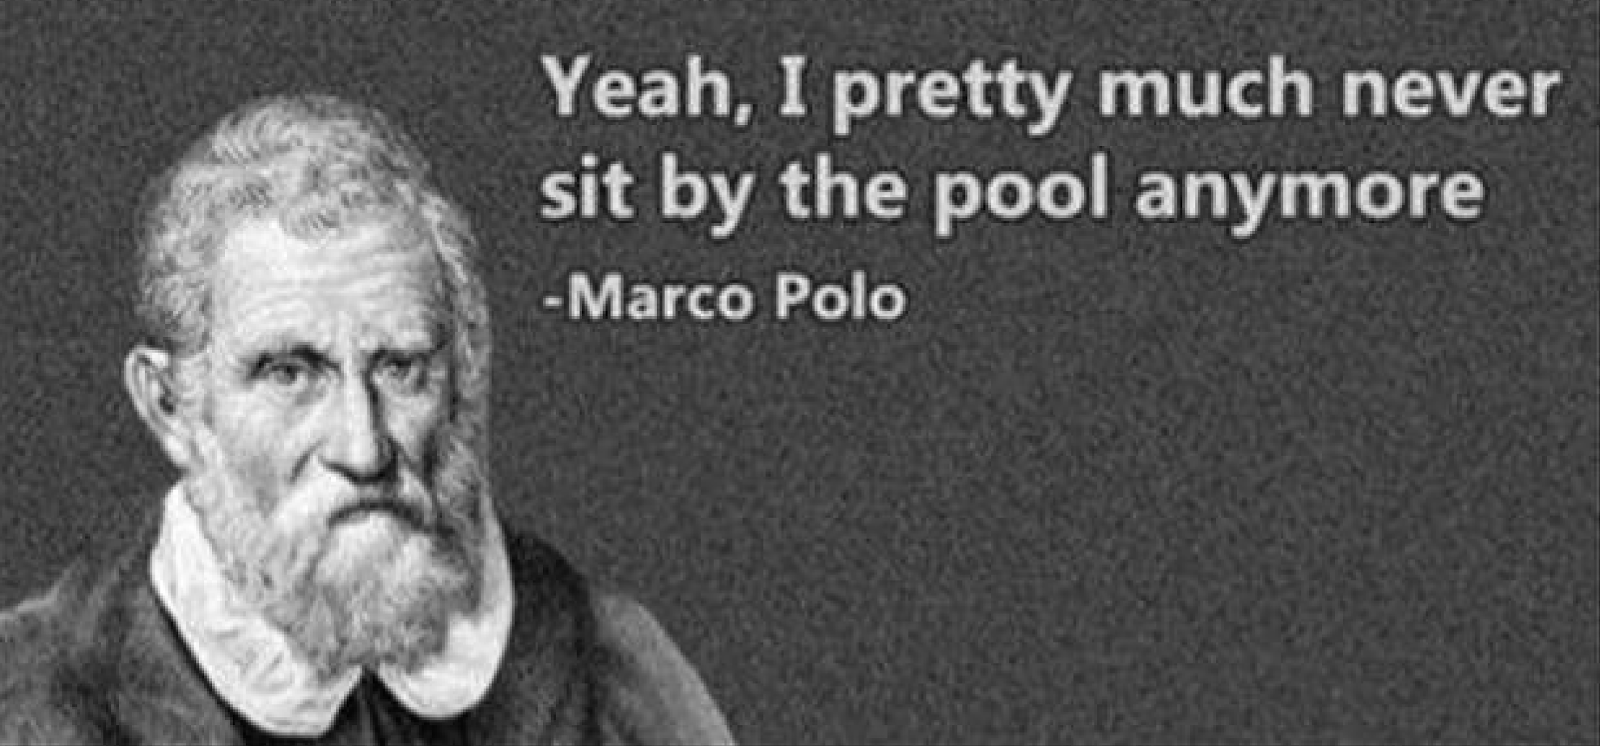 How Did The Game Marco Polo Originate